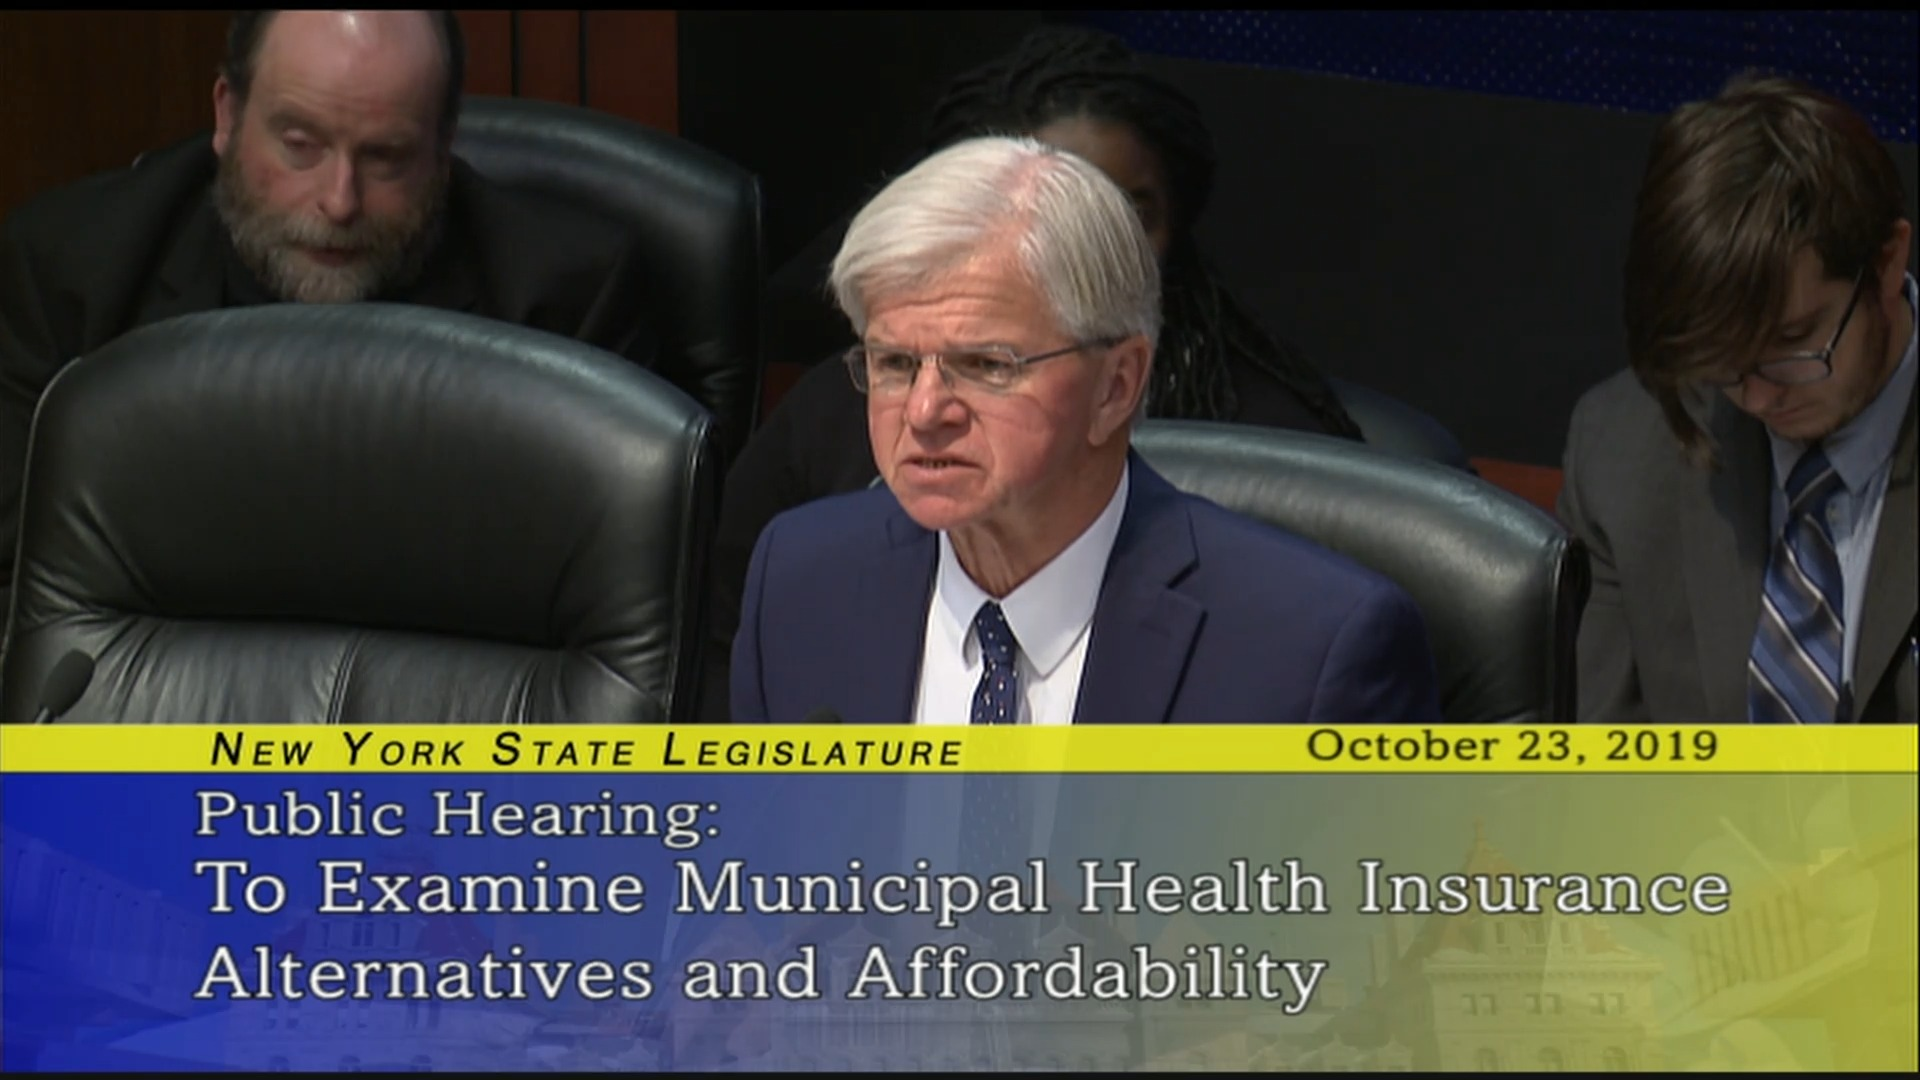 Public Hearing on Municipal Health Insurance Alternatives and Affordability